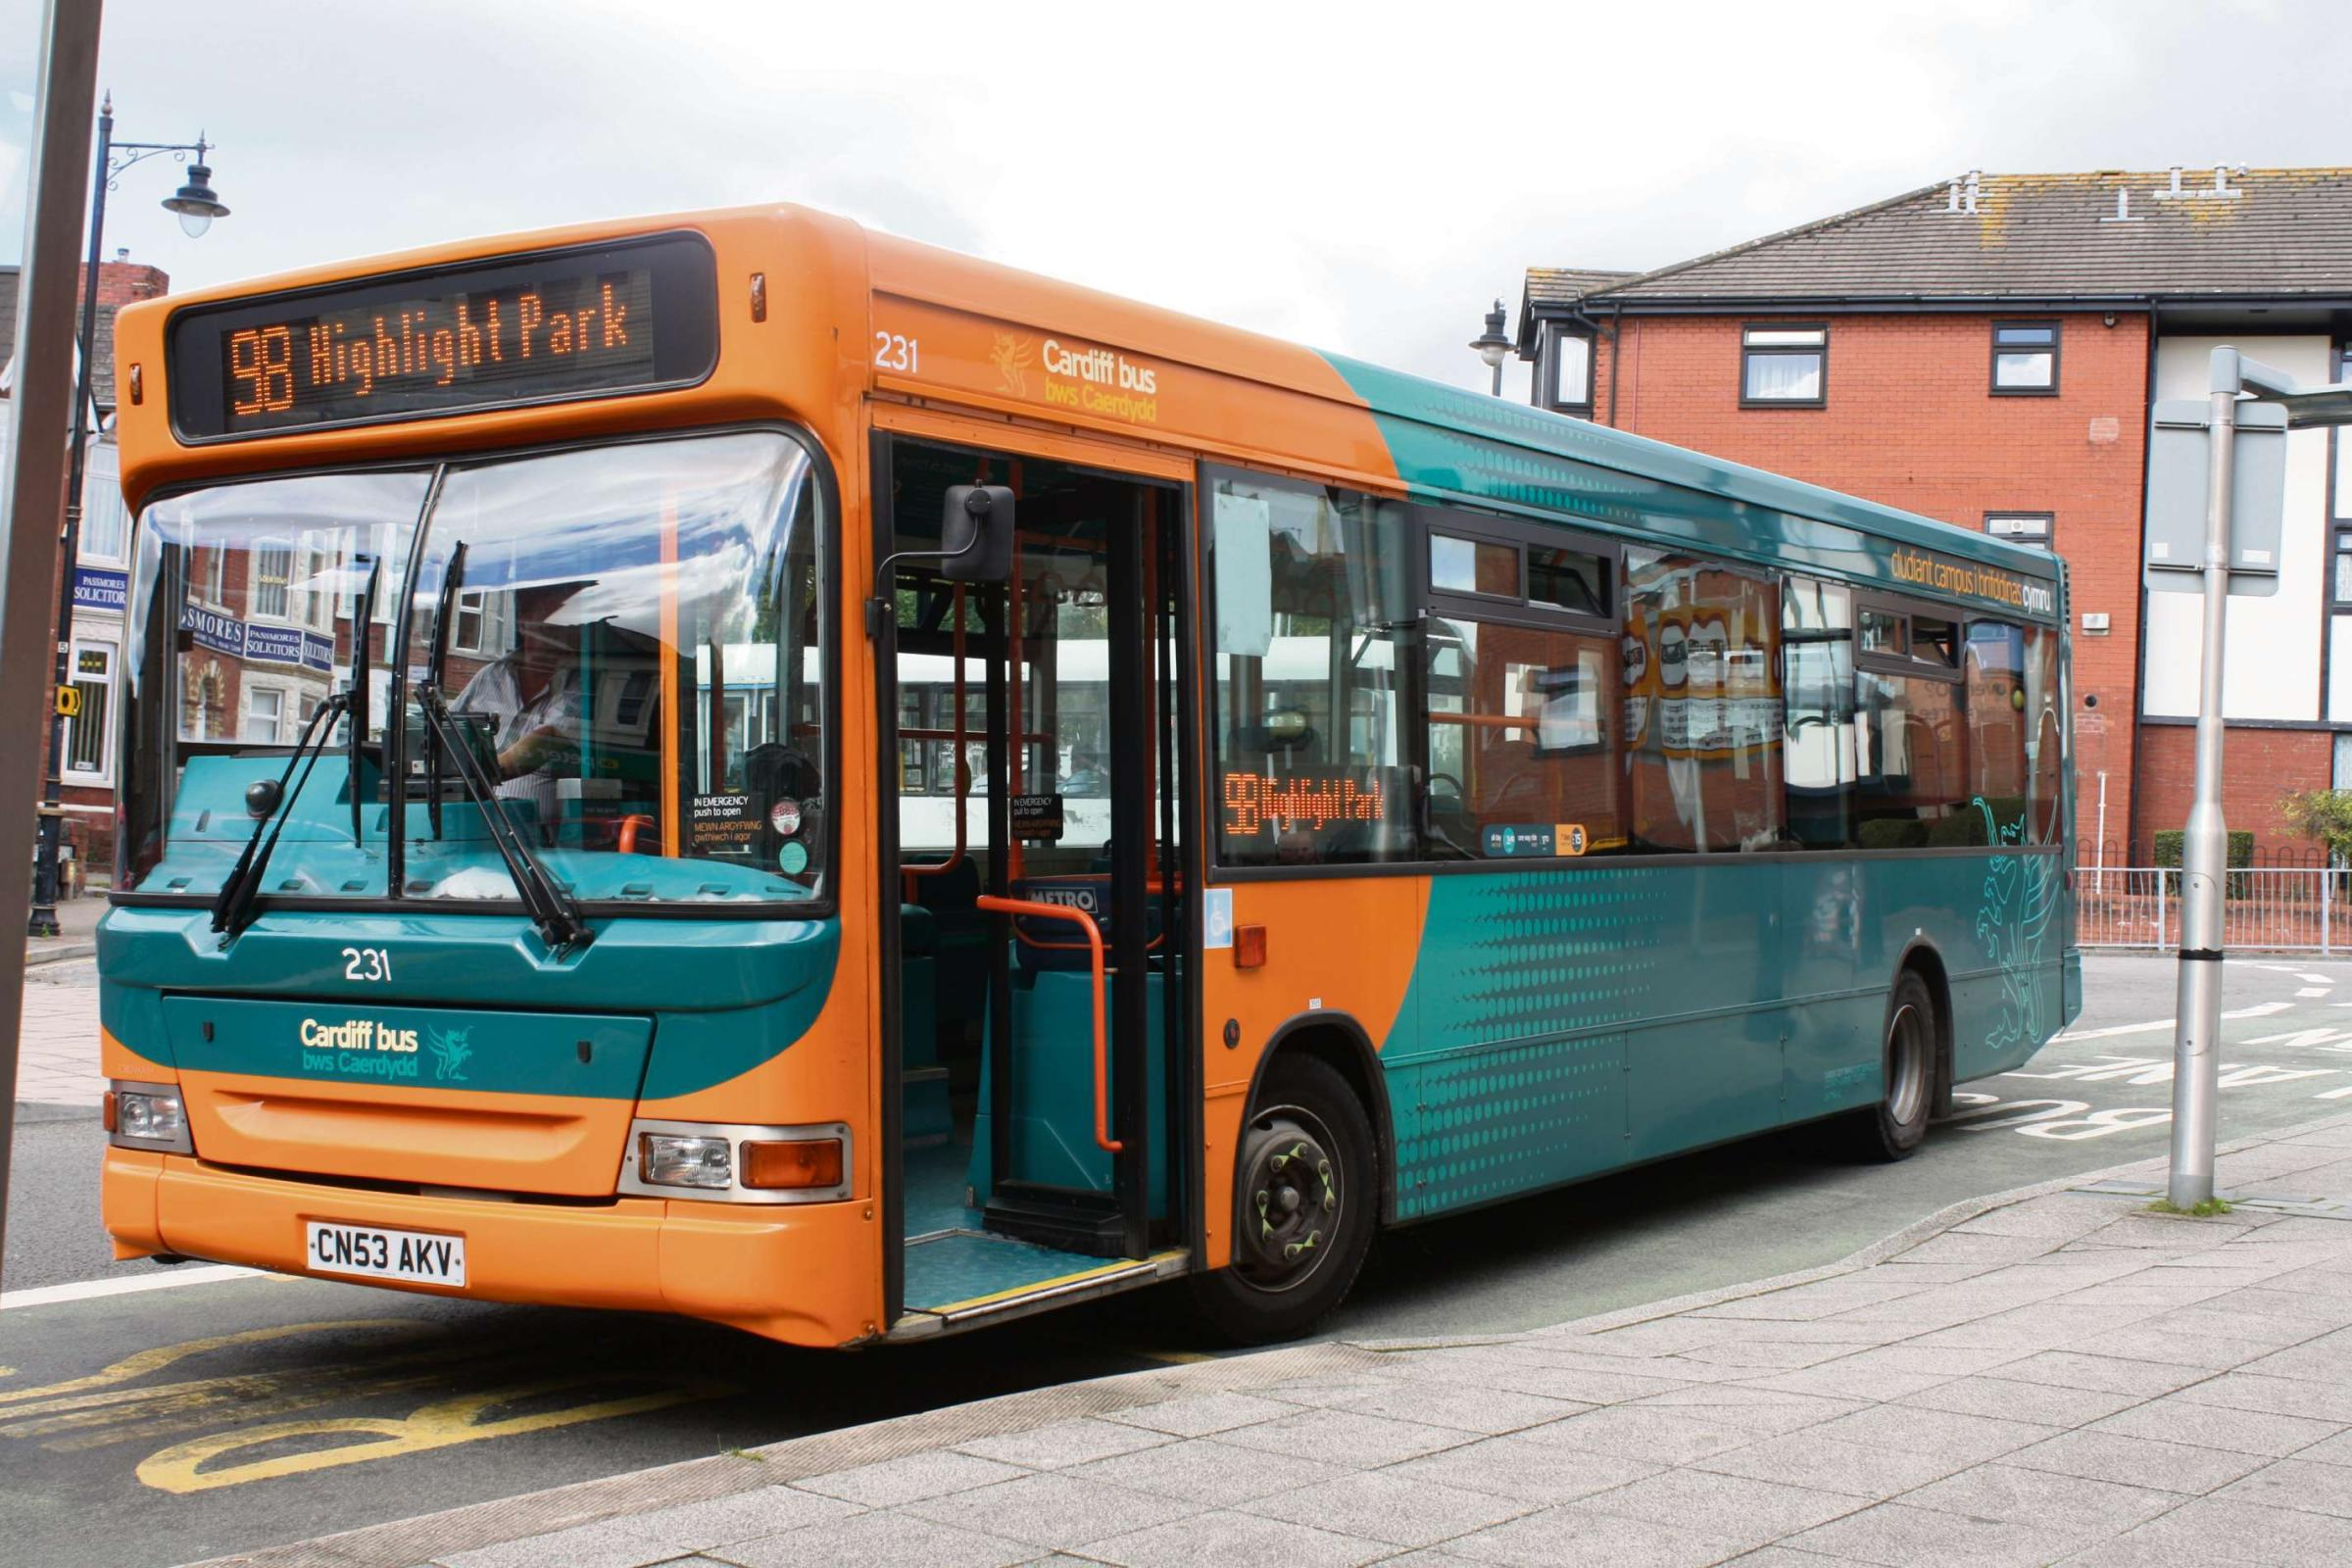 Cardiff Bus operates in Barry